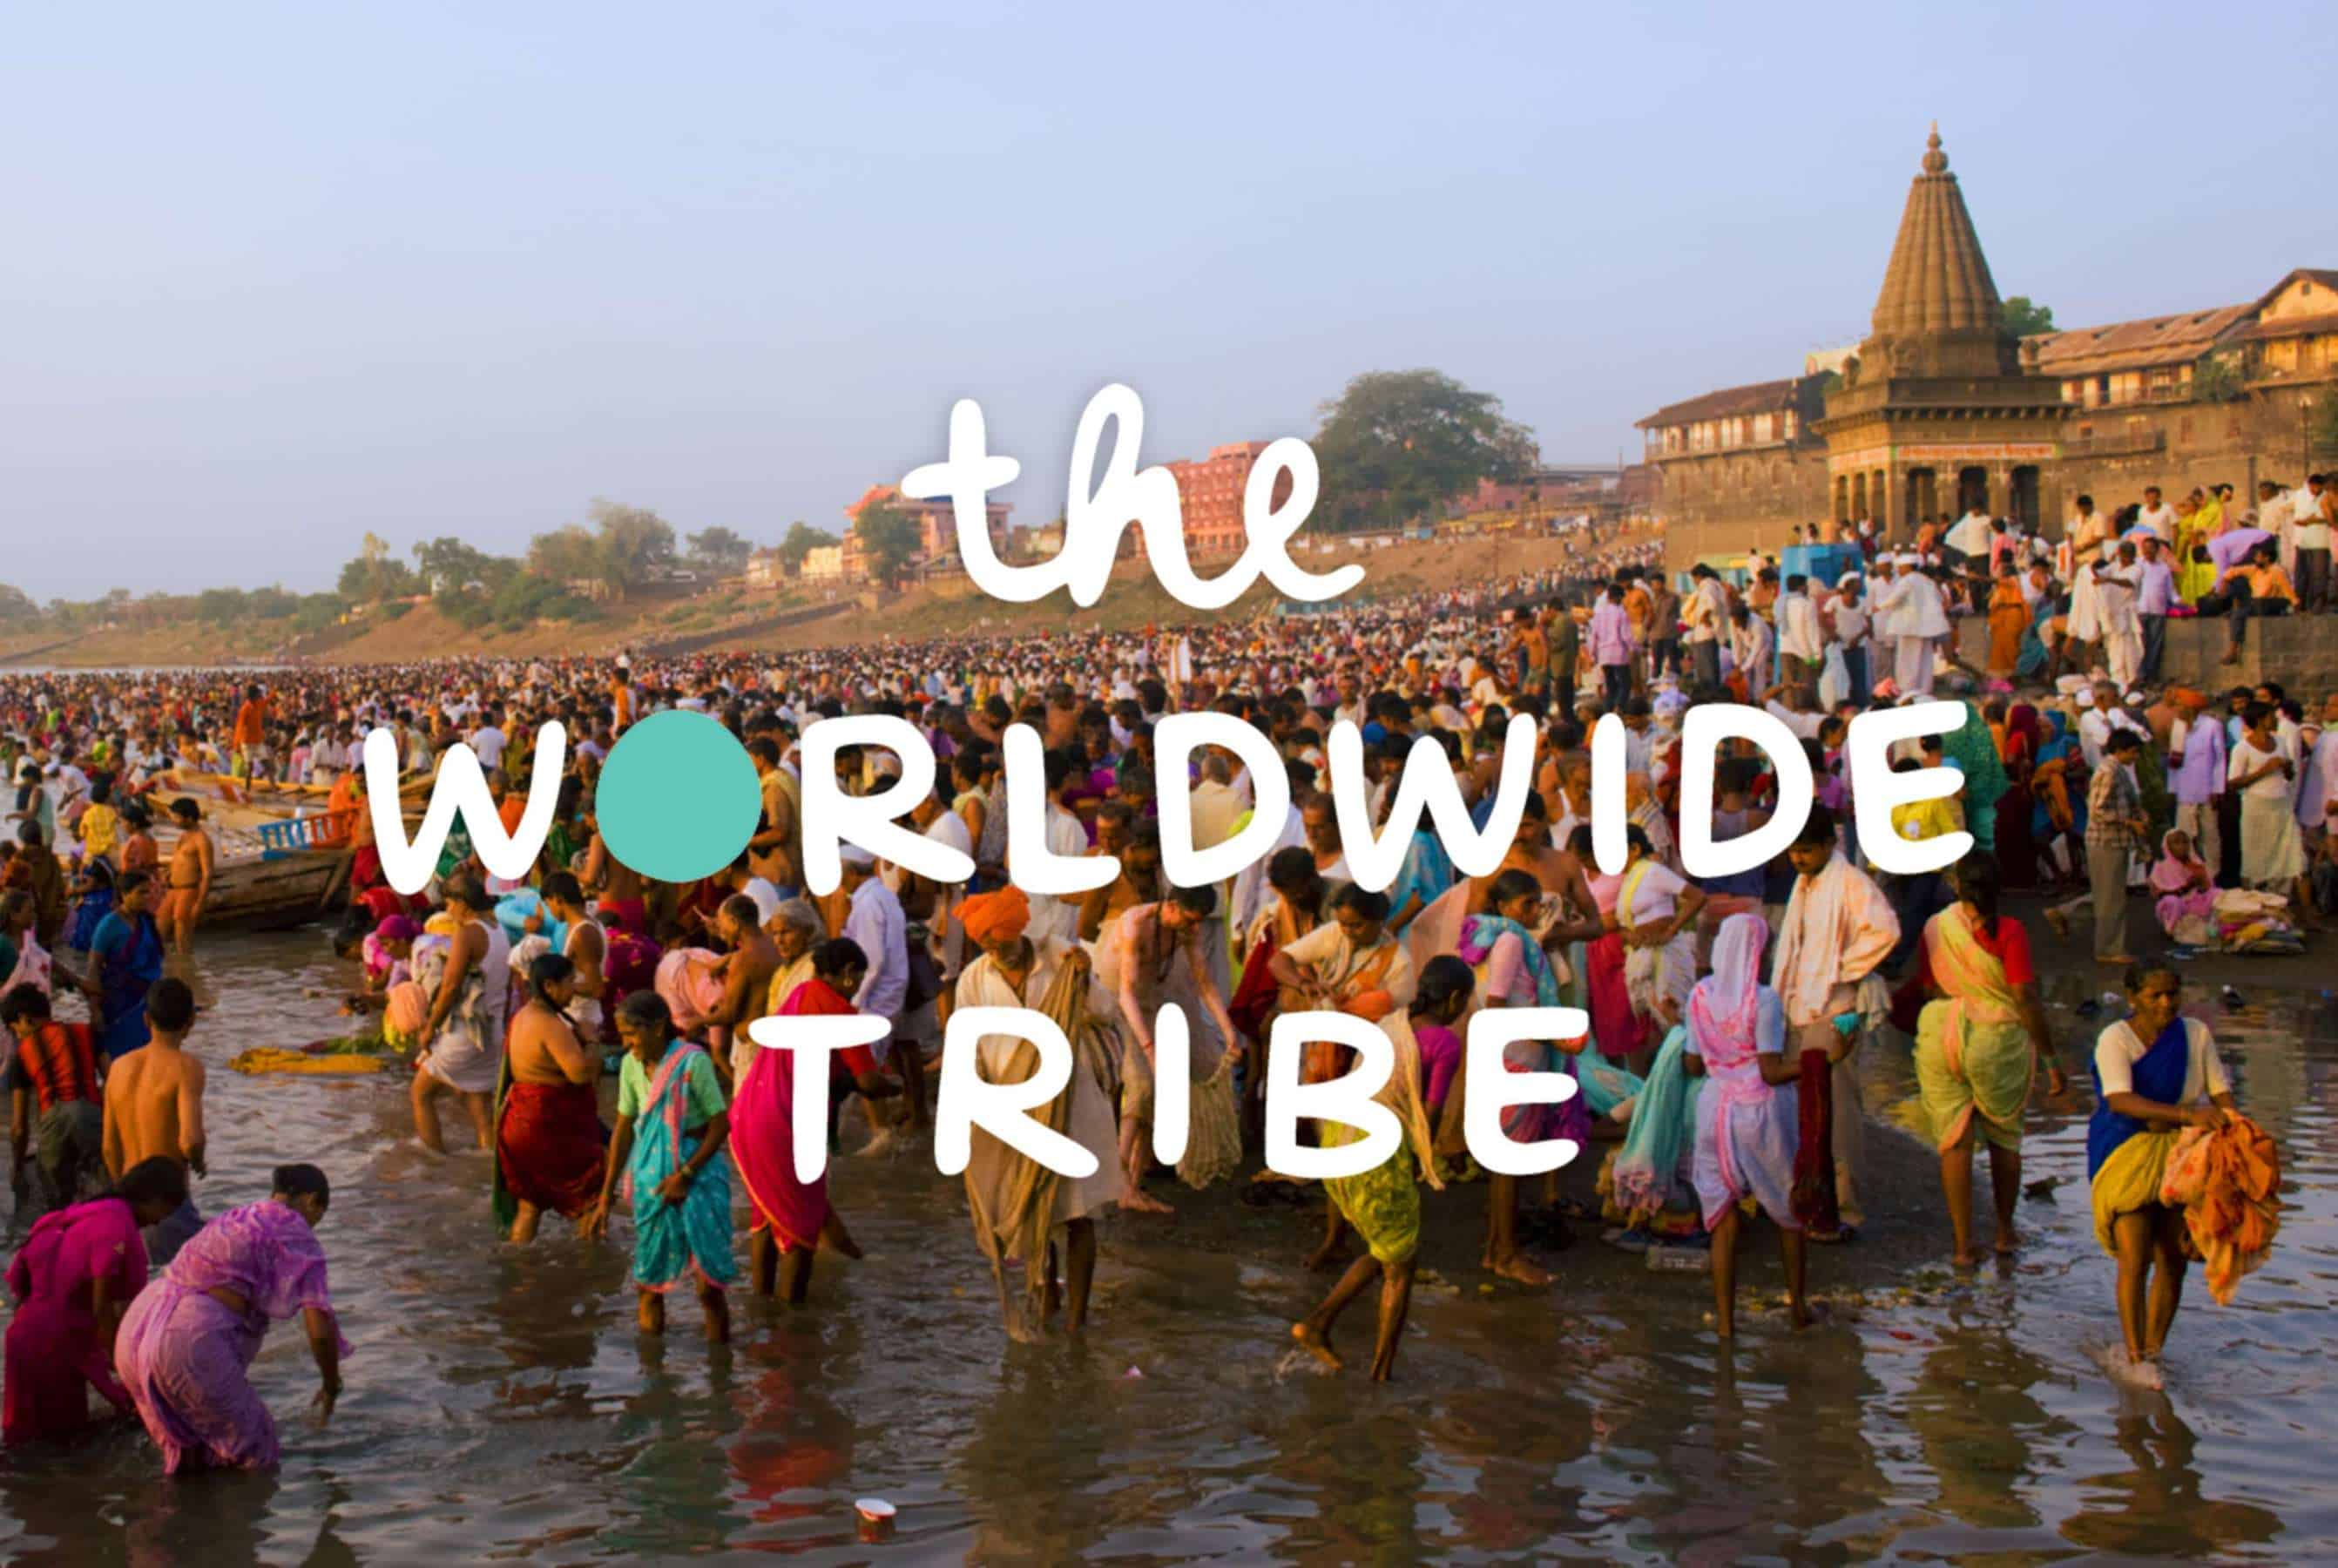 The Worldwide Tribe